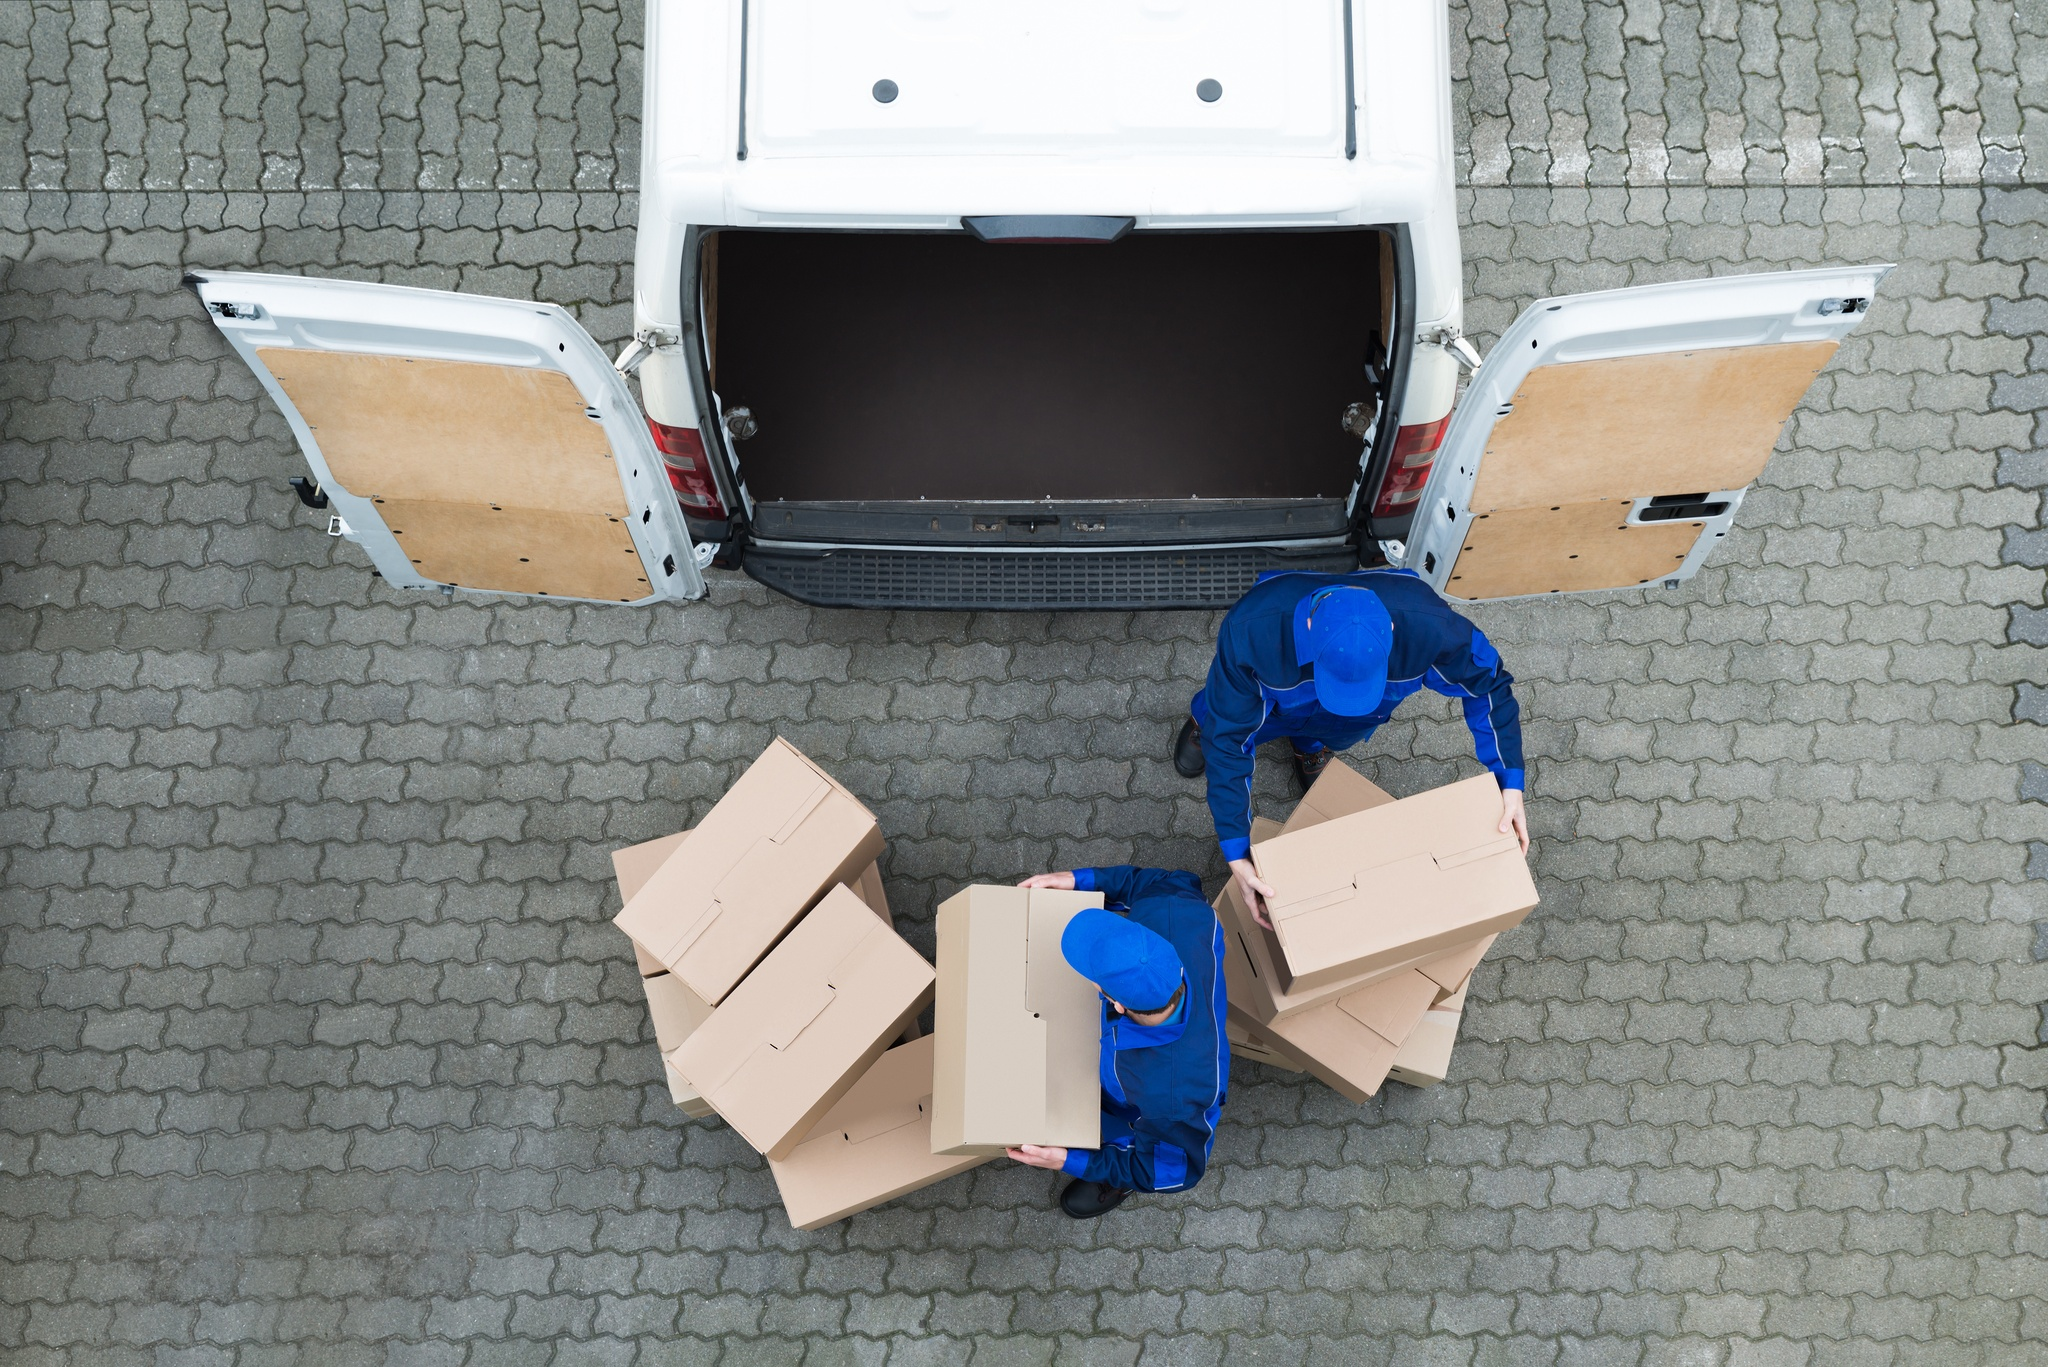 Retailers shift priorities to conquer the 'new battleground' of urban logistics